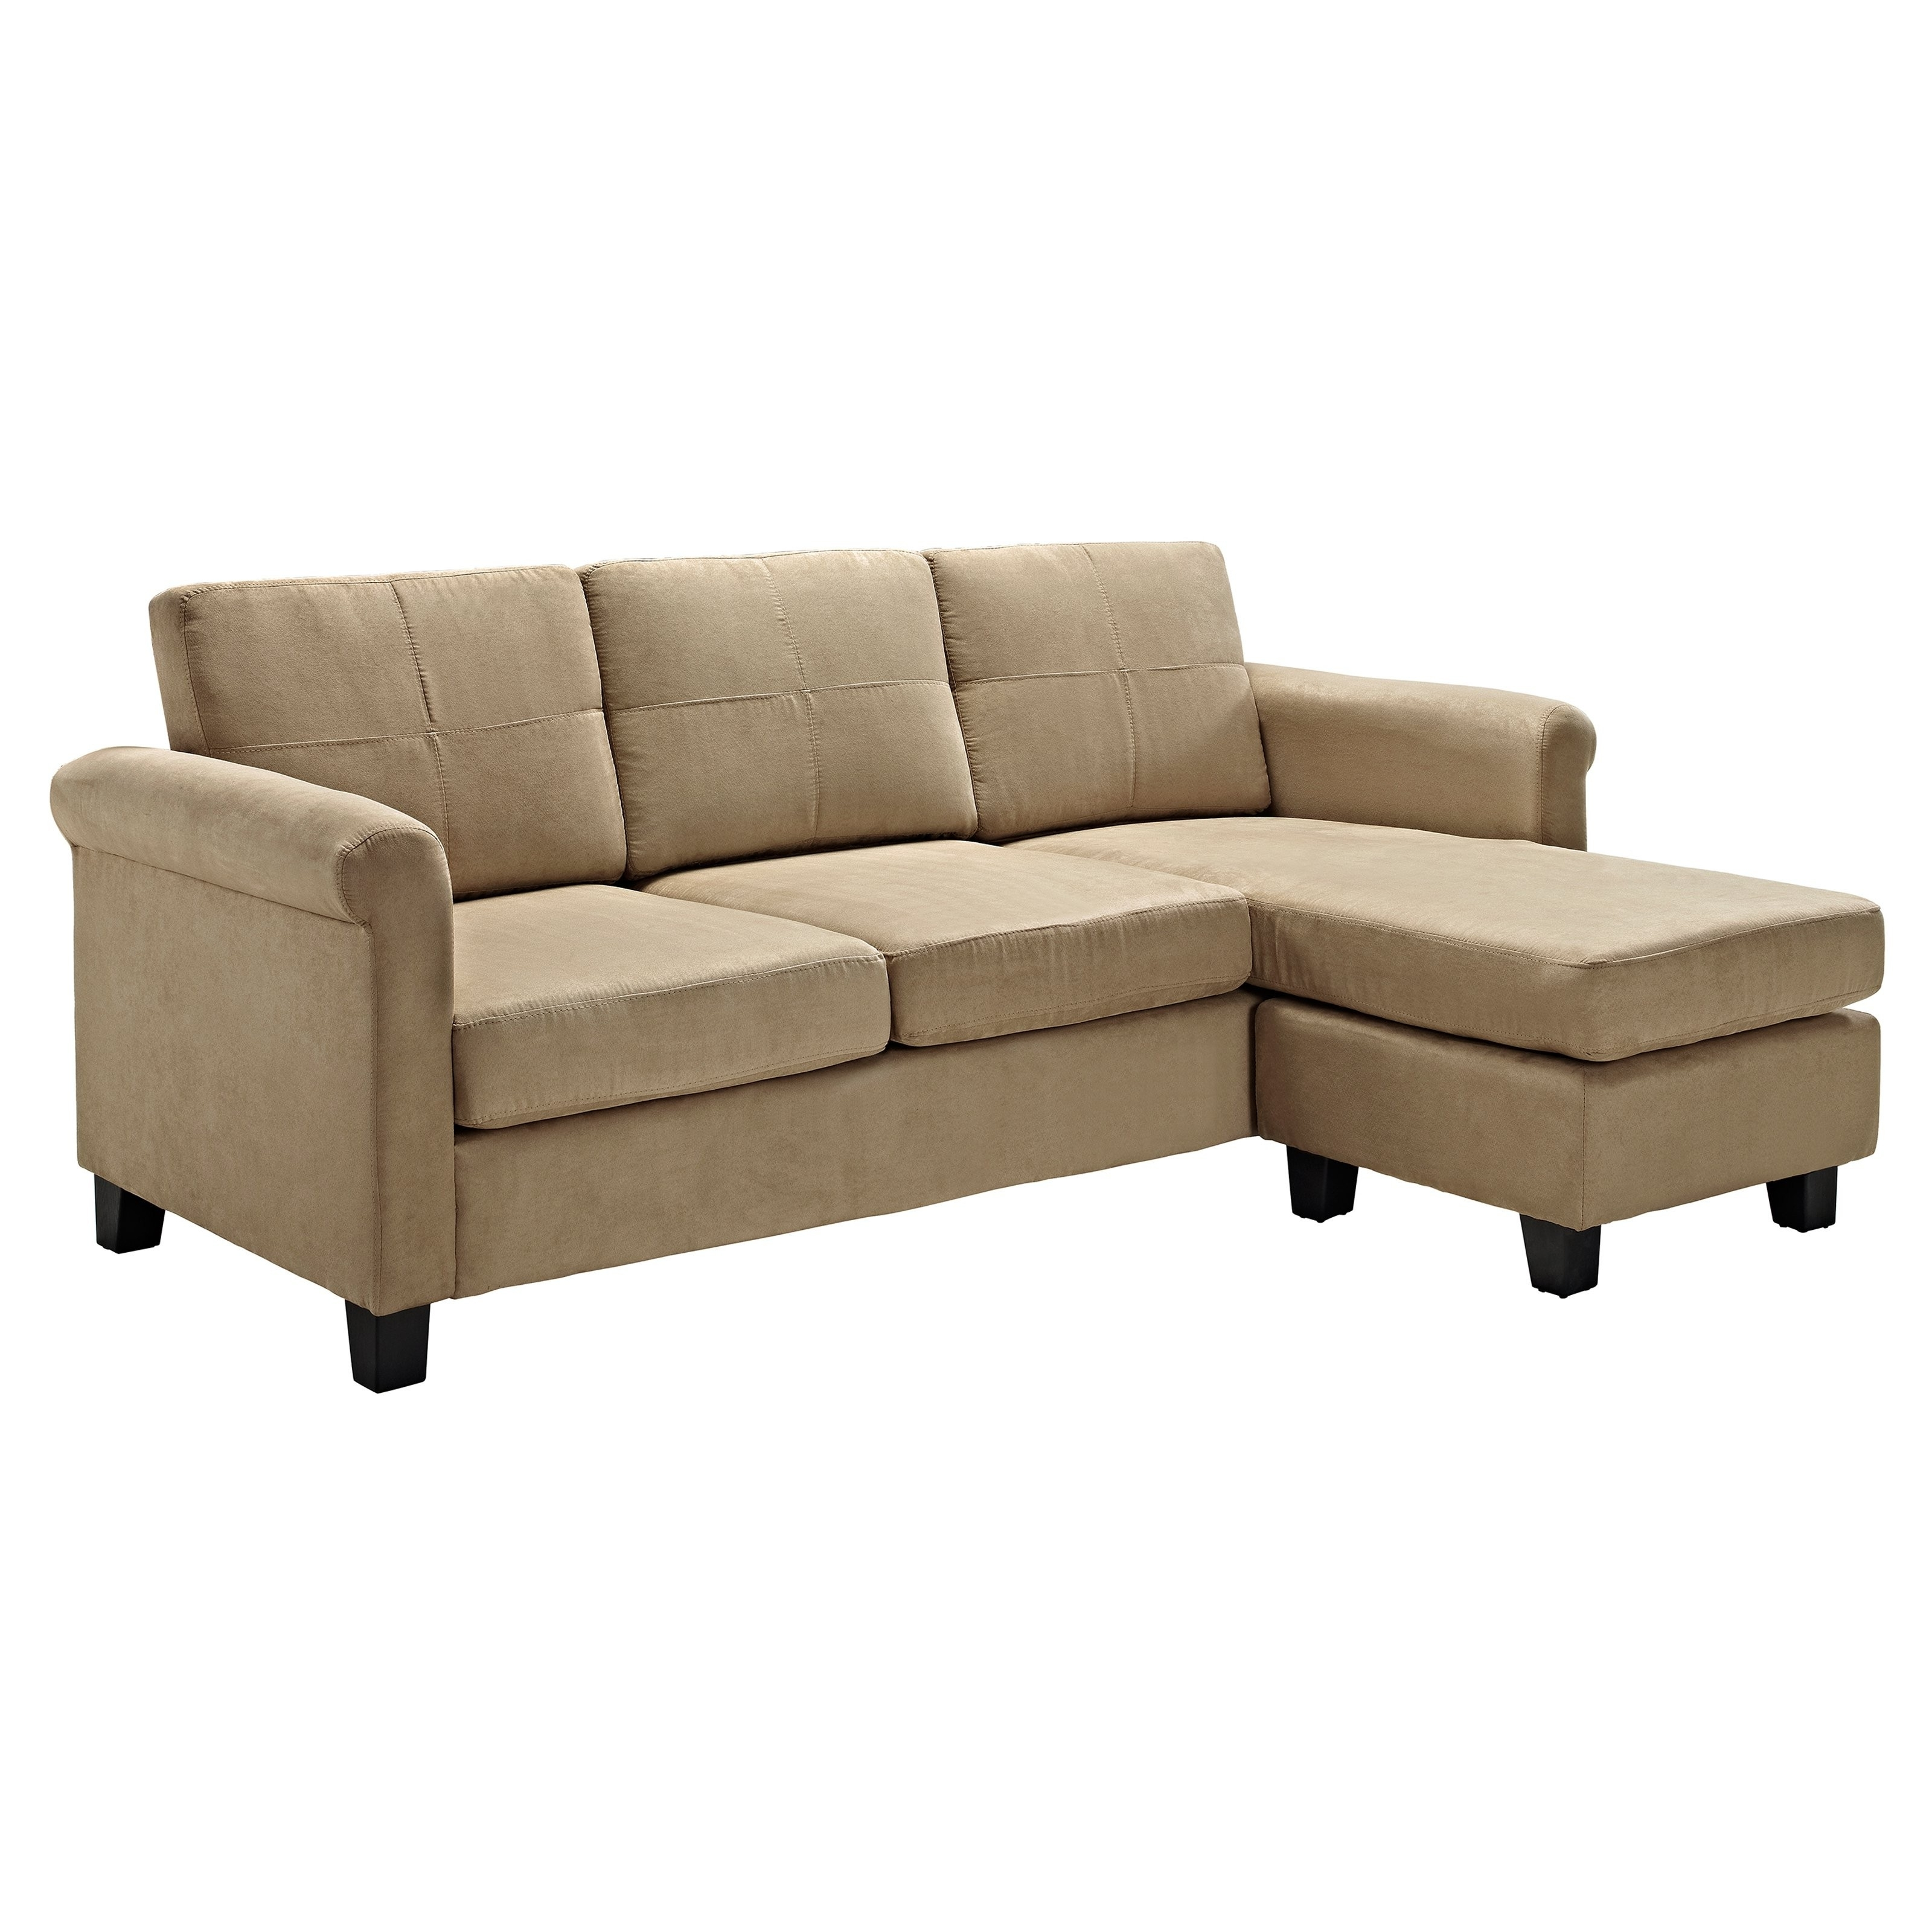 Beautiful Target Sectional Sofa – Buildsimplehome Throughout Favorite Target Sectional Sofas (View 13 of 15)